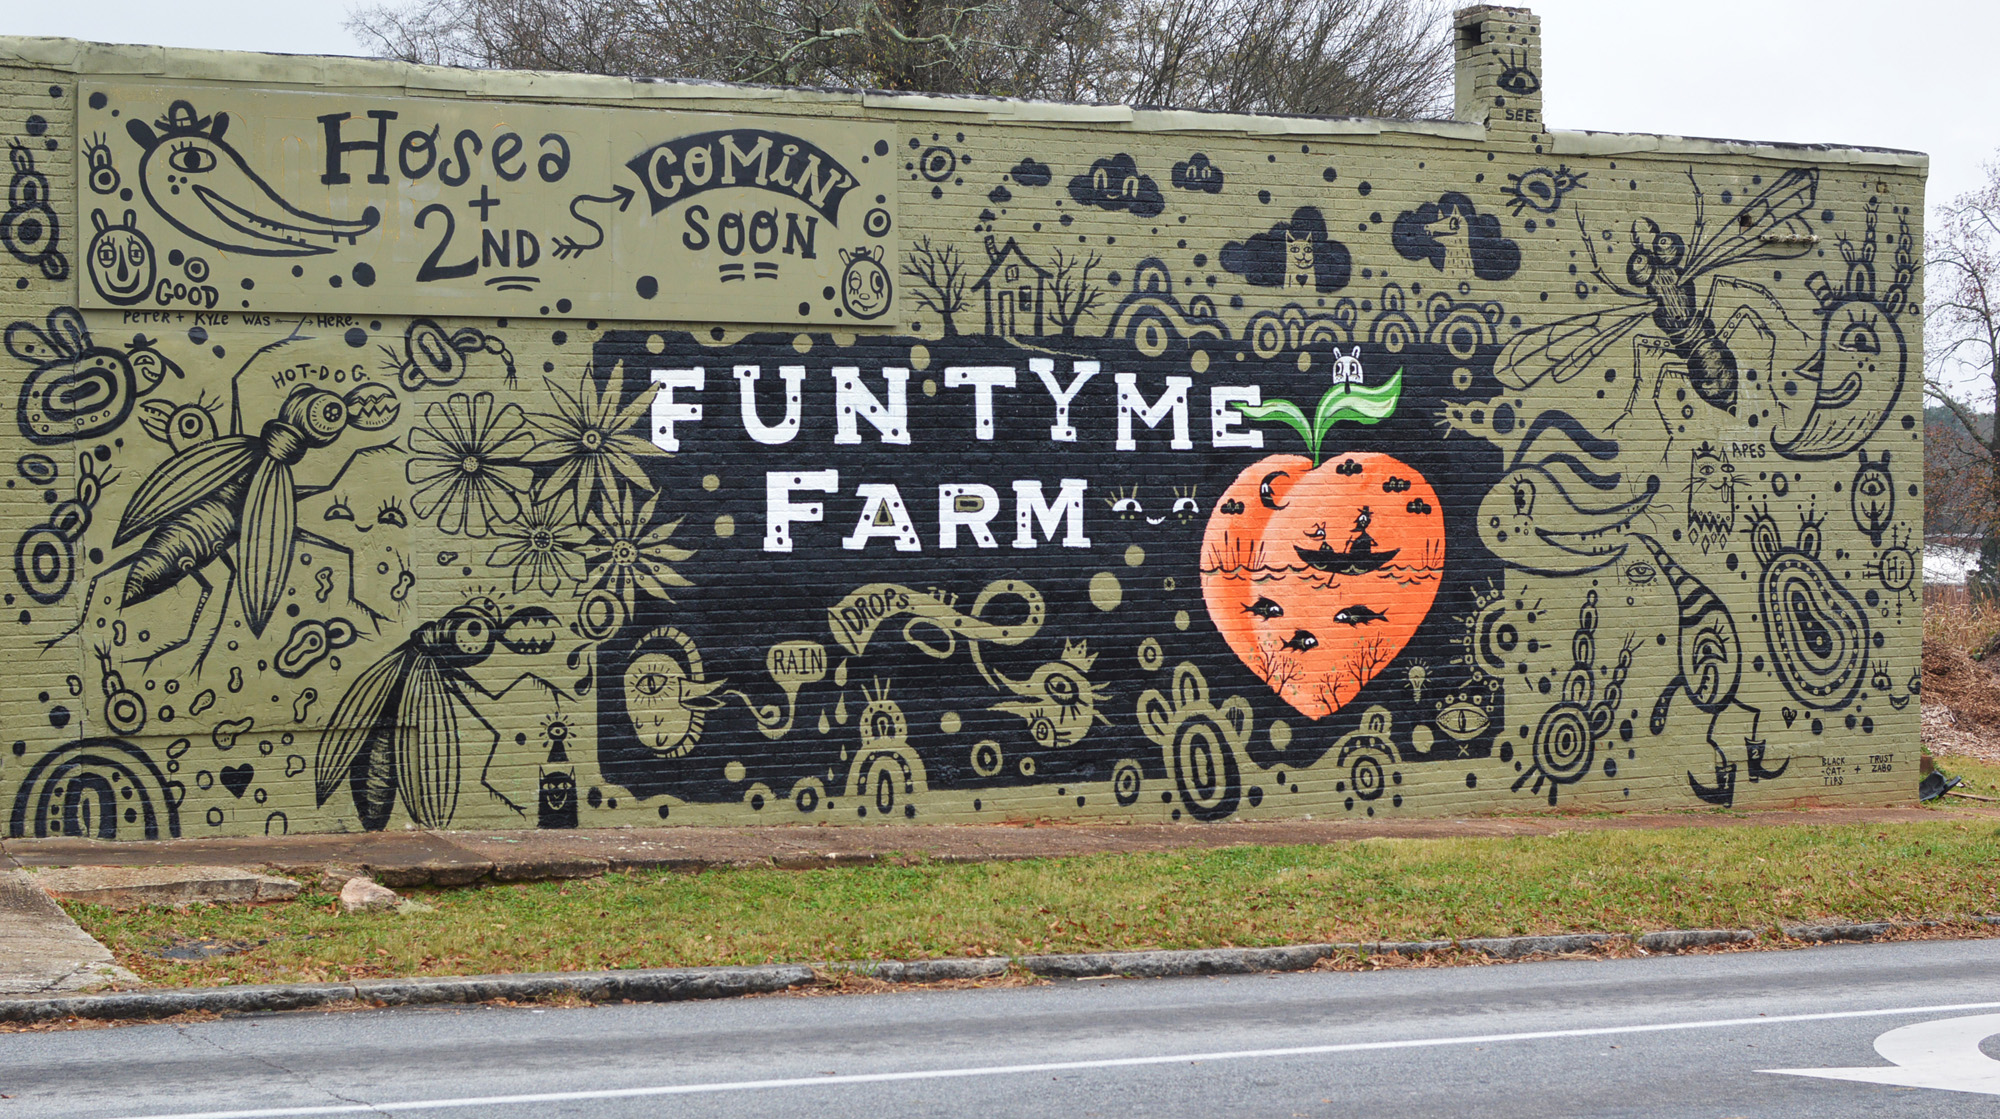 fun tyme farm - blackcattips and trustzabo mural - 4